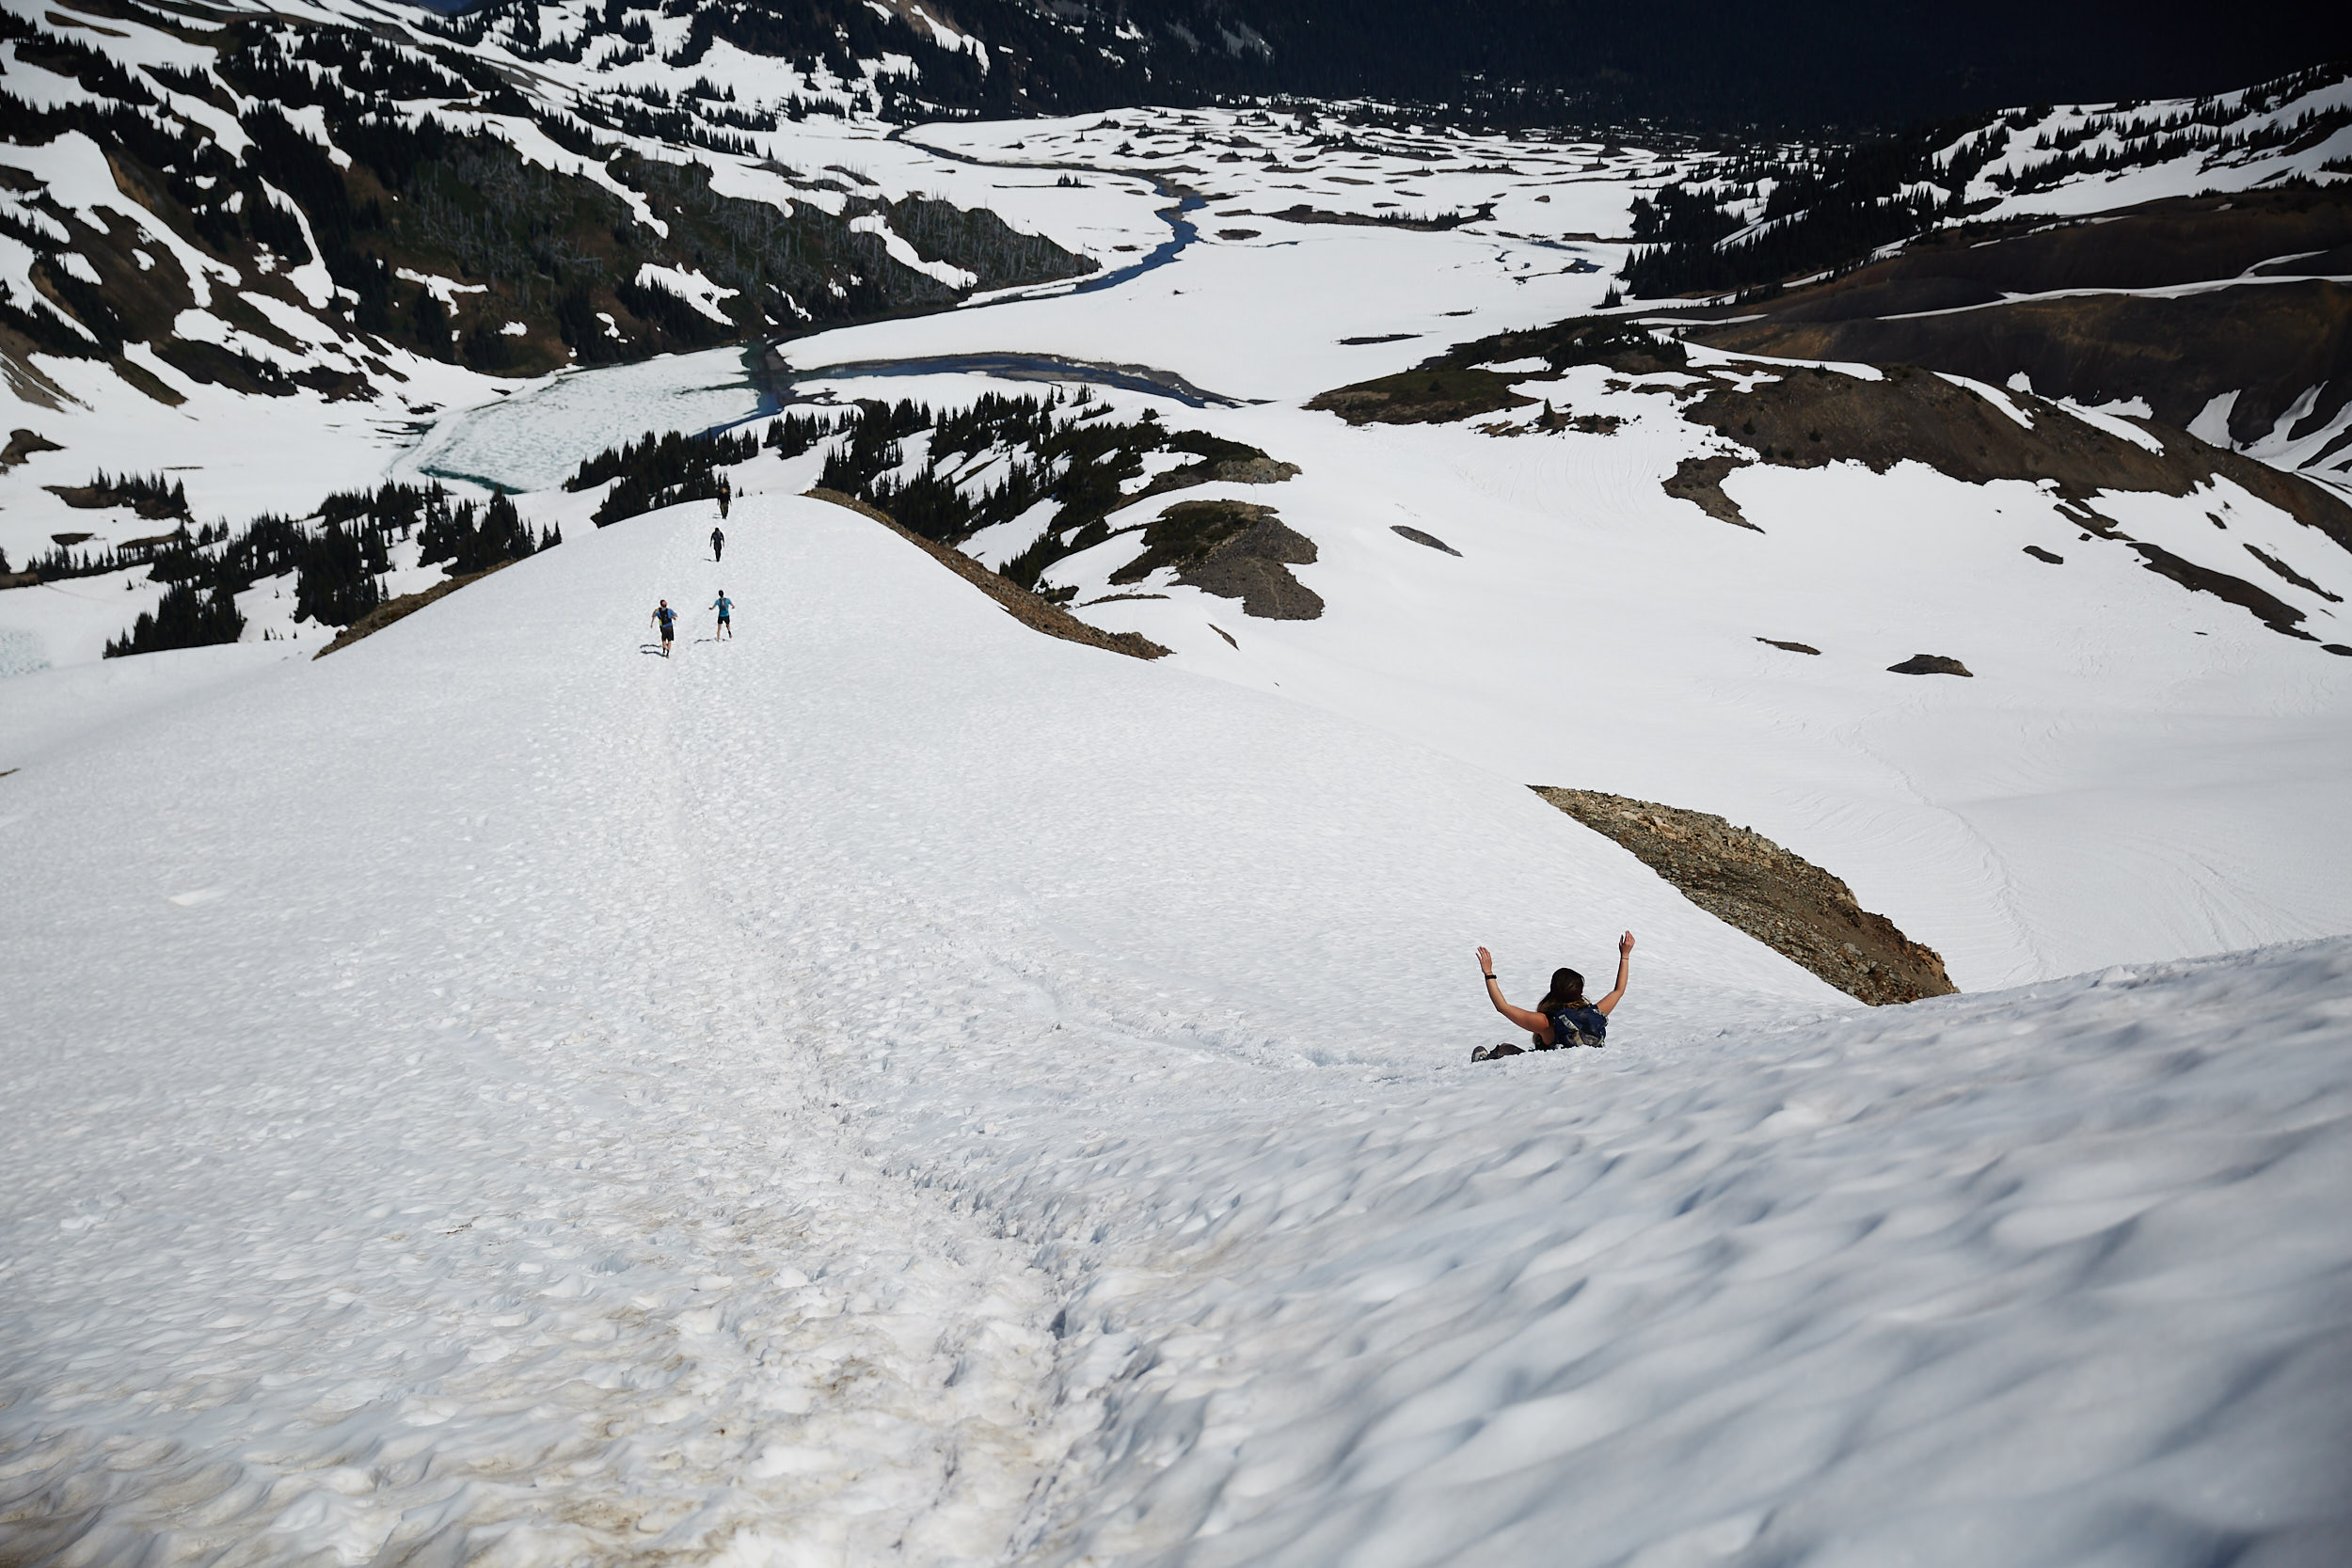 The snow made for a super fast and fun descent!